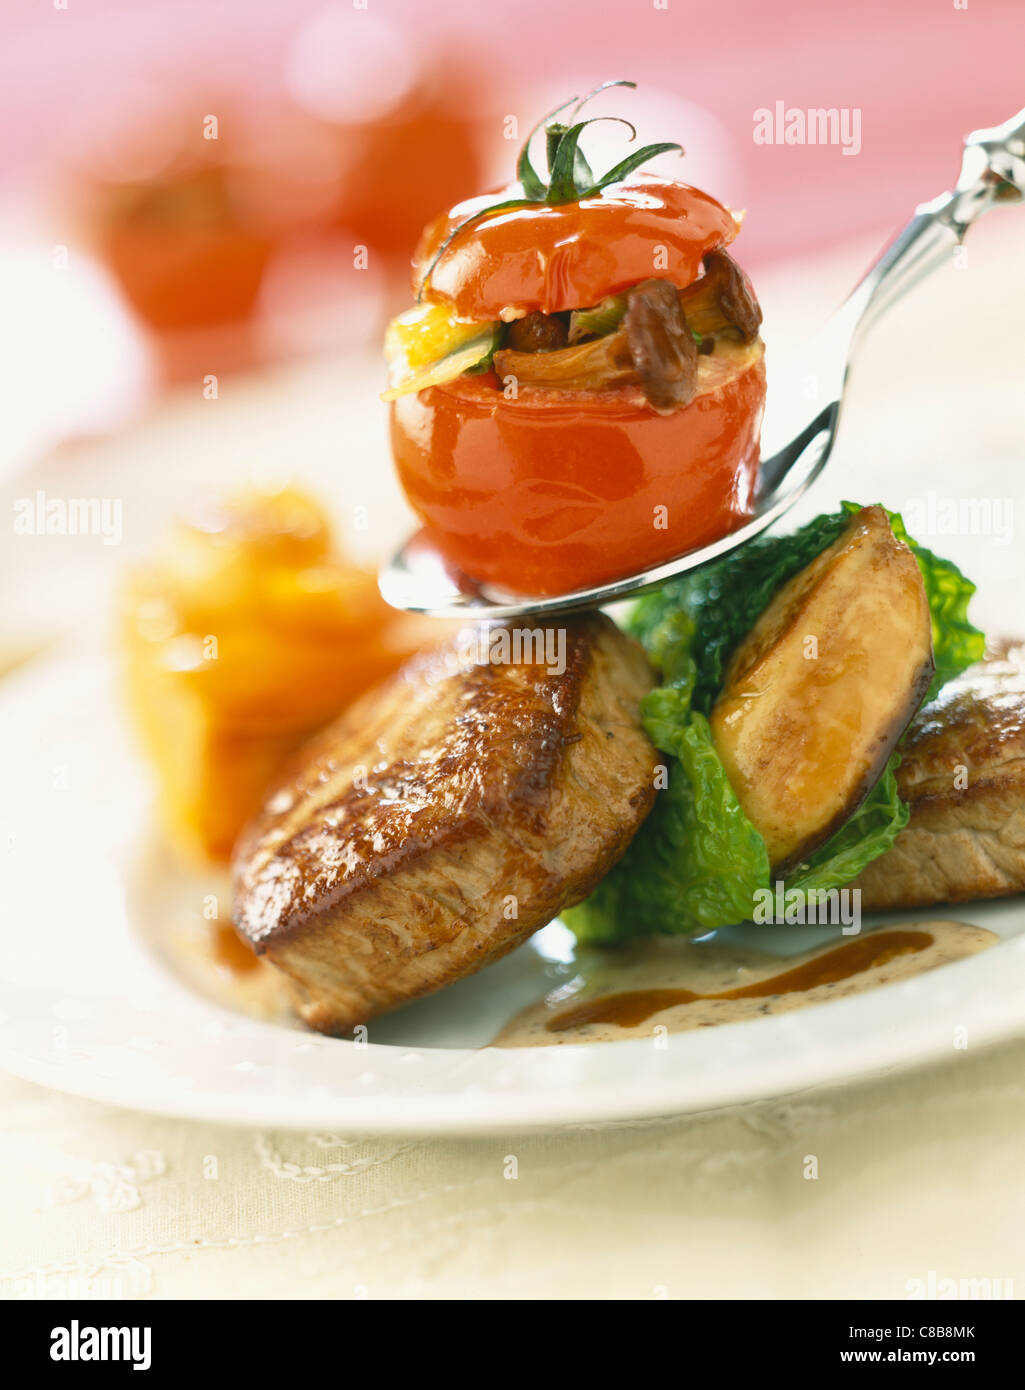 Beef Steak Pan Fried Foie Gras And Stuffed Tomato